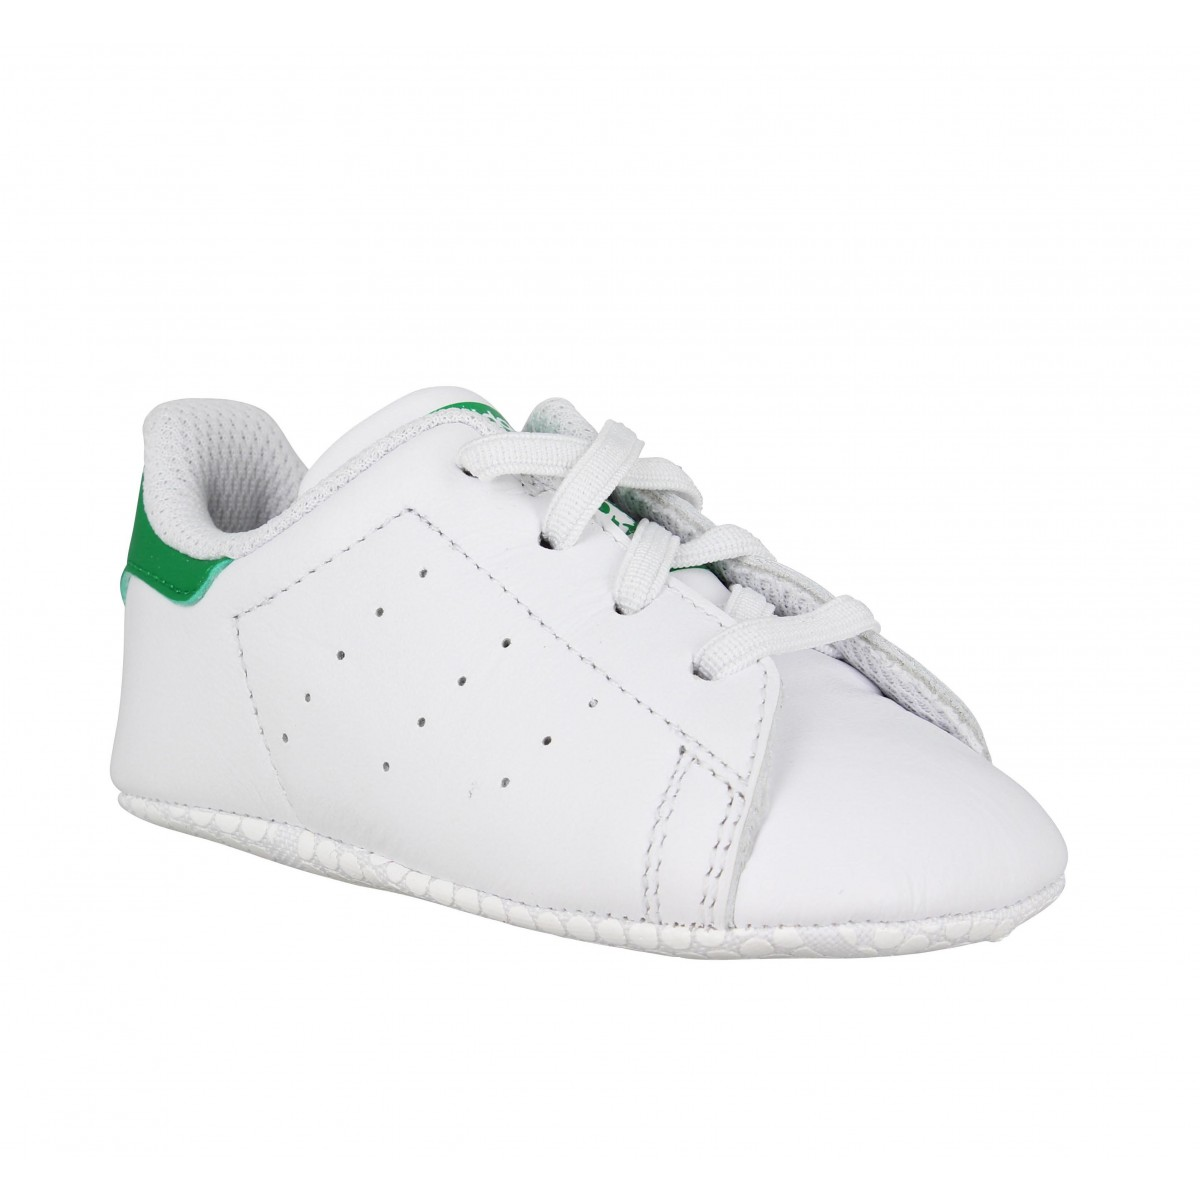 Baskets ADIDAS Stan Smith Bebe cuir Enfant Blanc + Vert